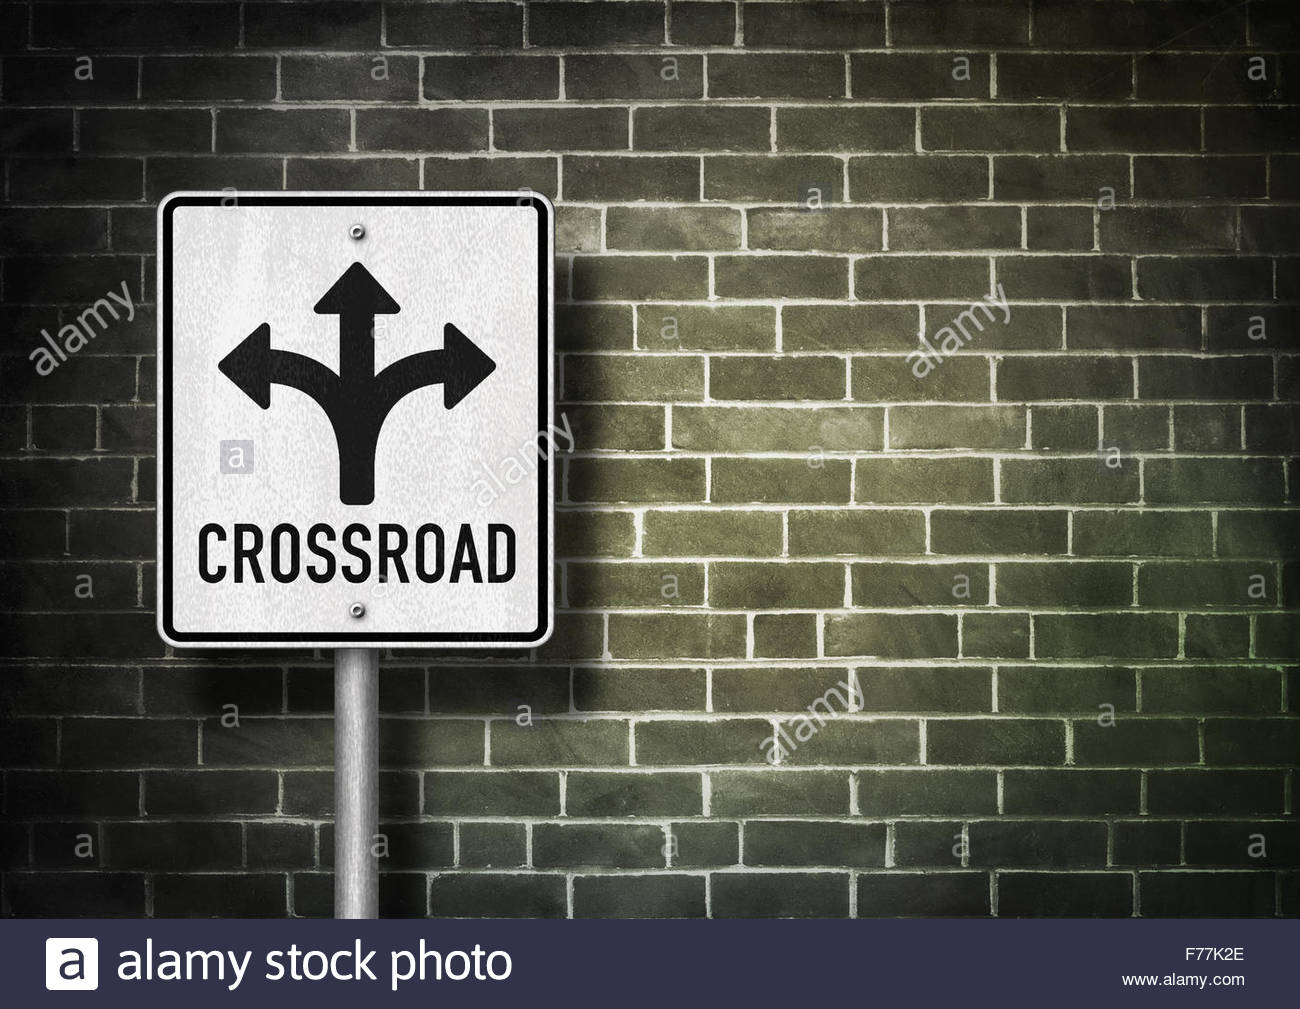 Carrefour - Road sign Photo Stock